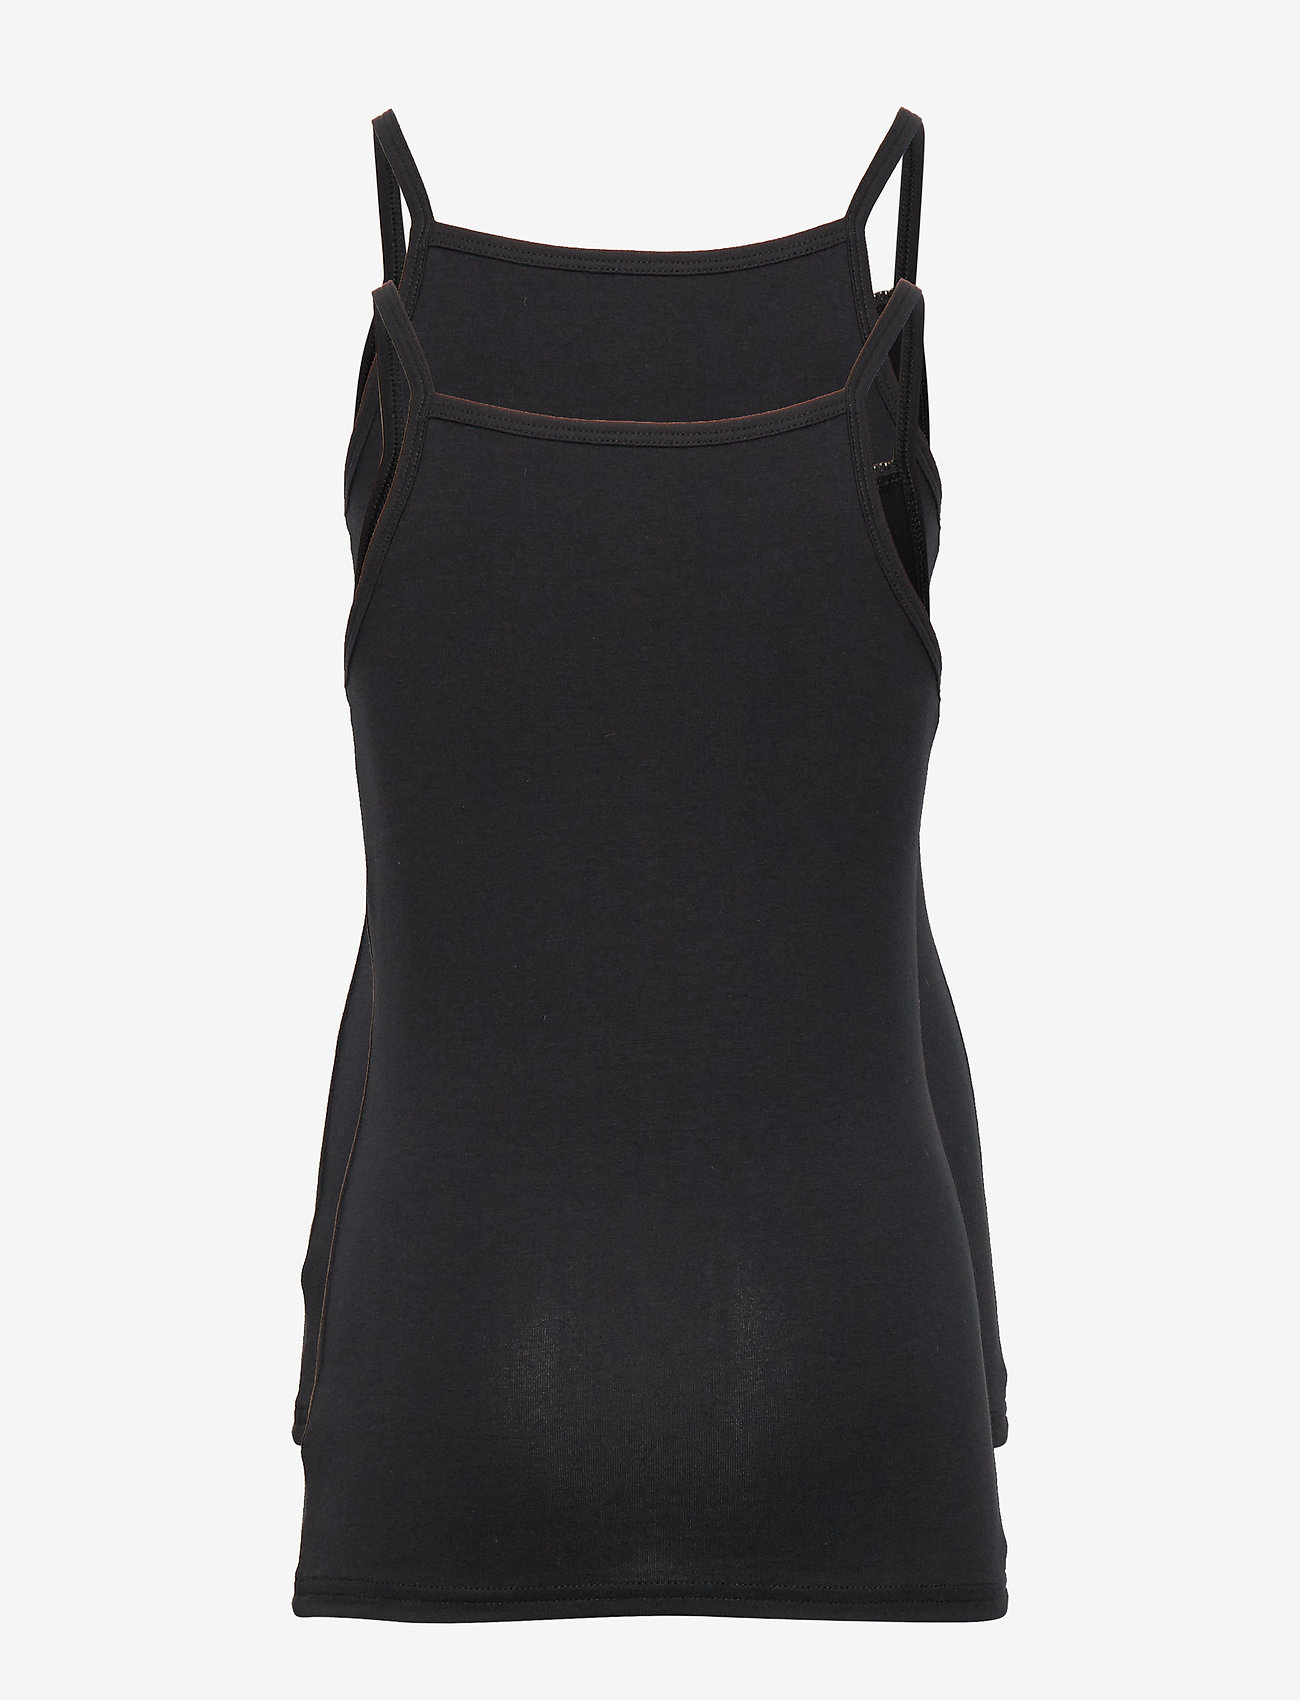 name it - NKFSTRAP TOP 2P SOLID BLACK NOOS - tops - black - 1